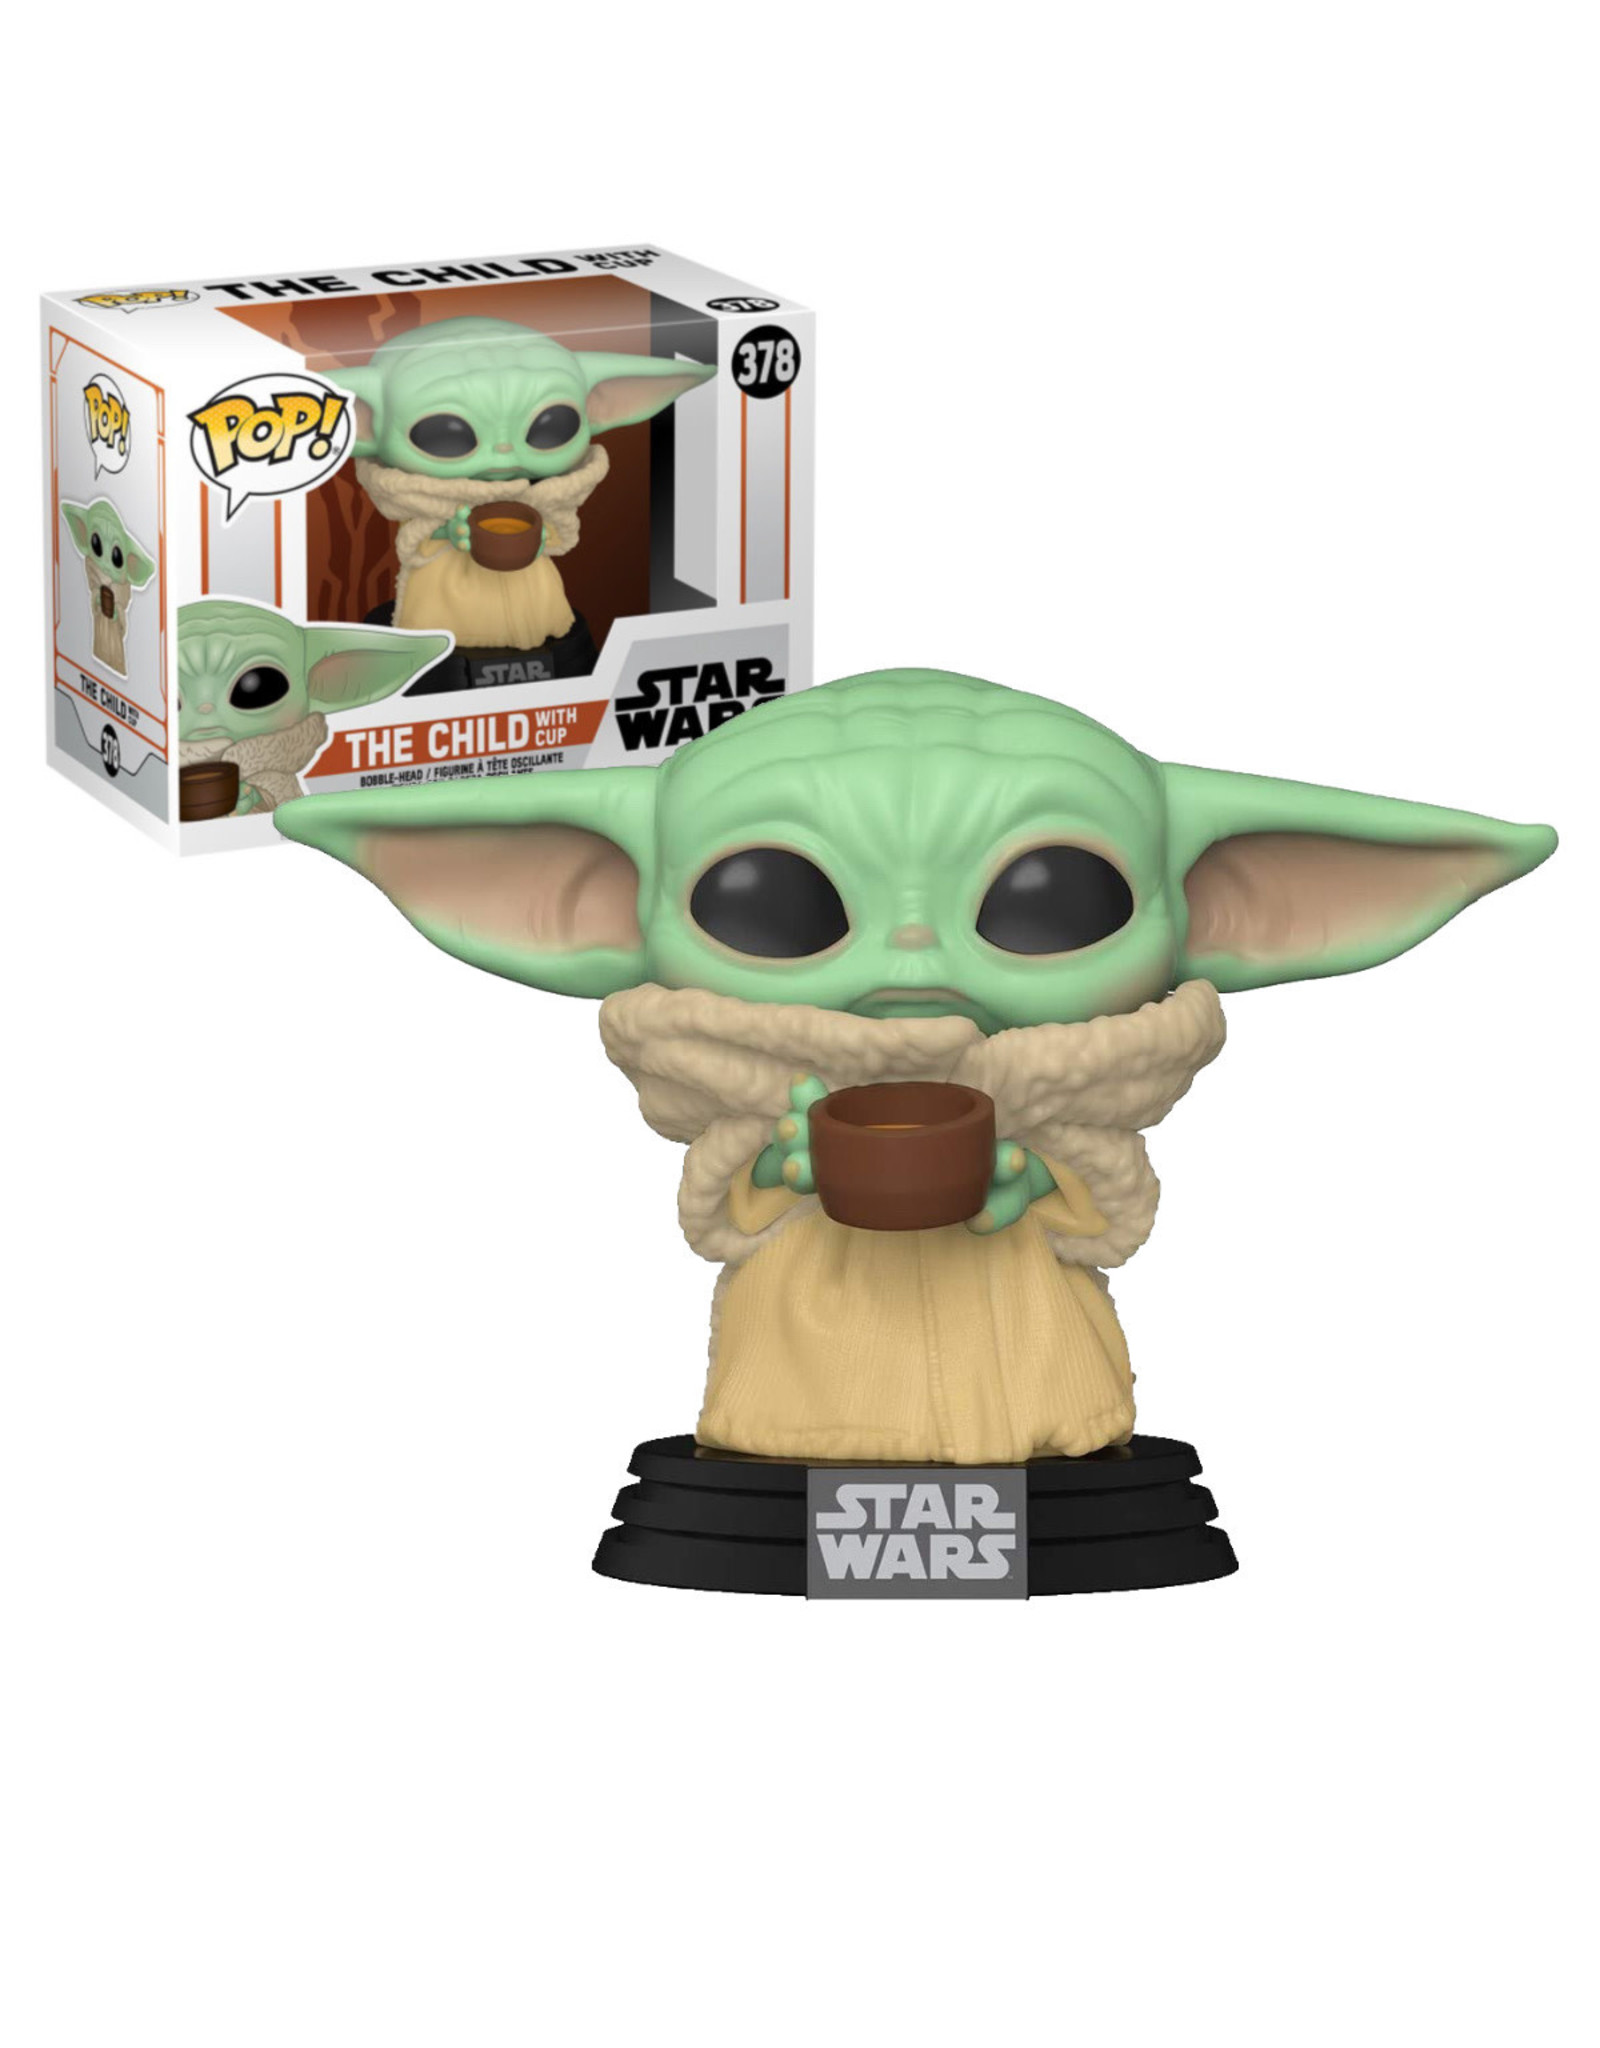 Star Wars Star Wars 378 ( Funko Pop ) The Child with cup